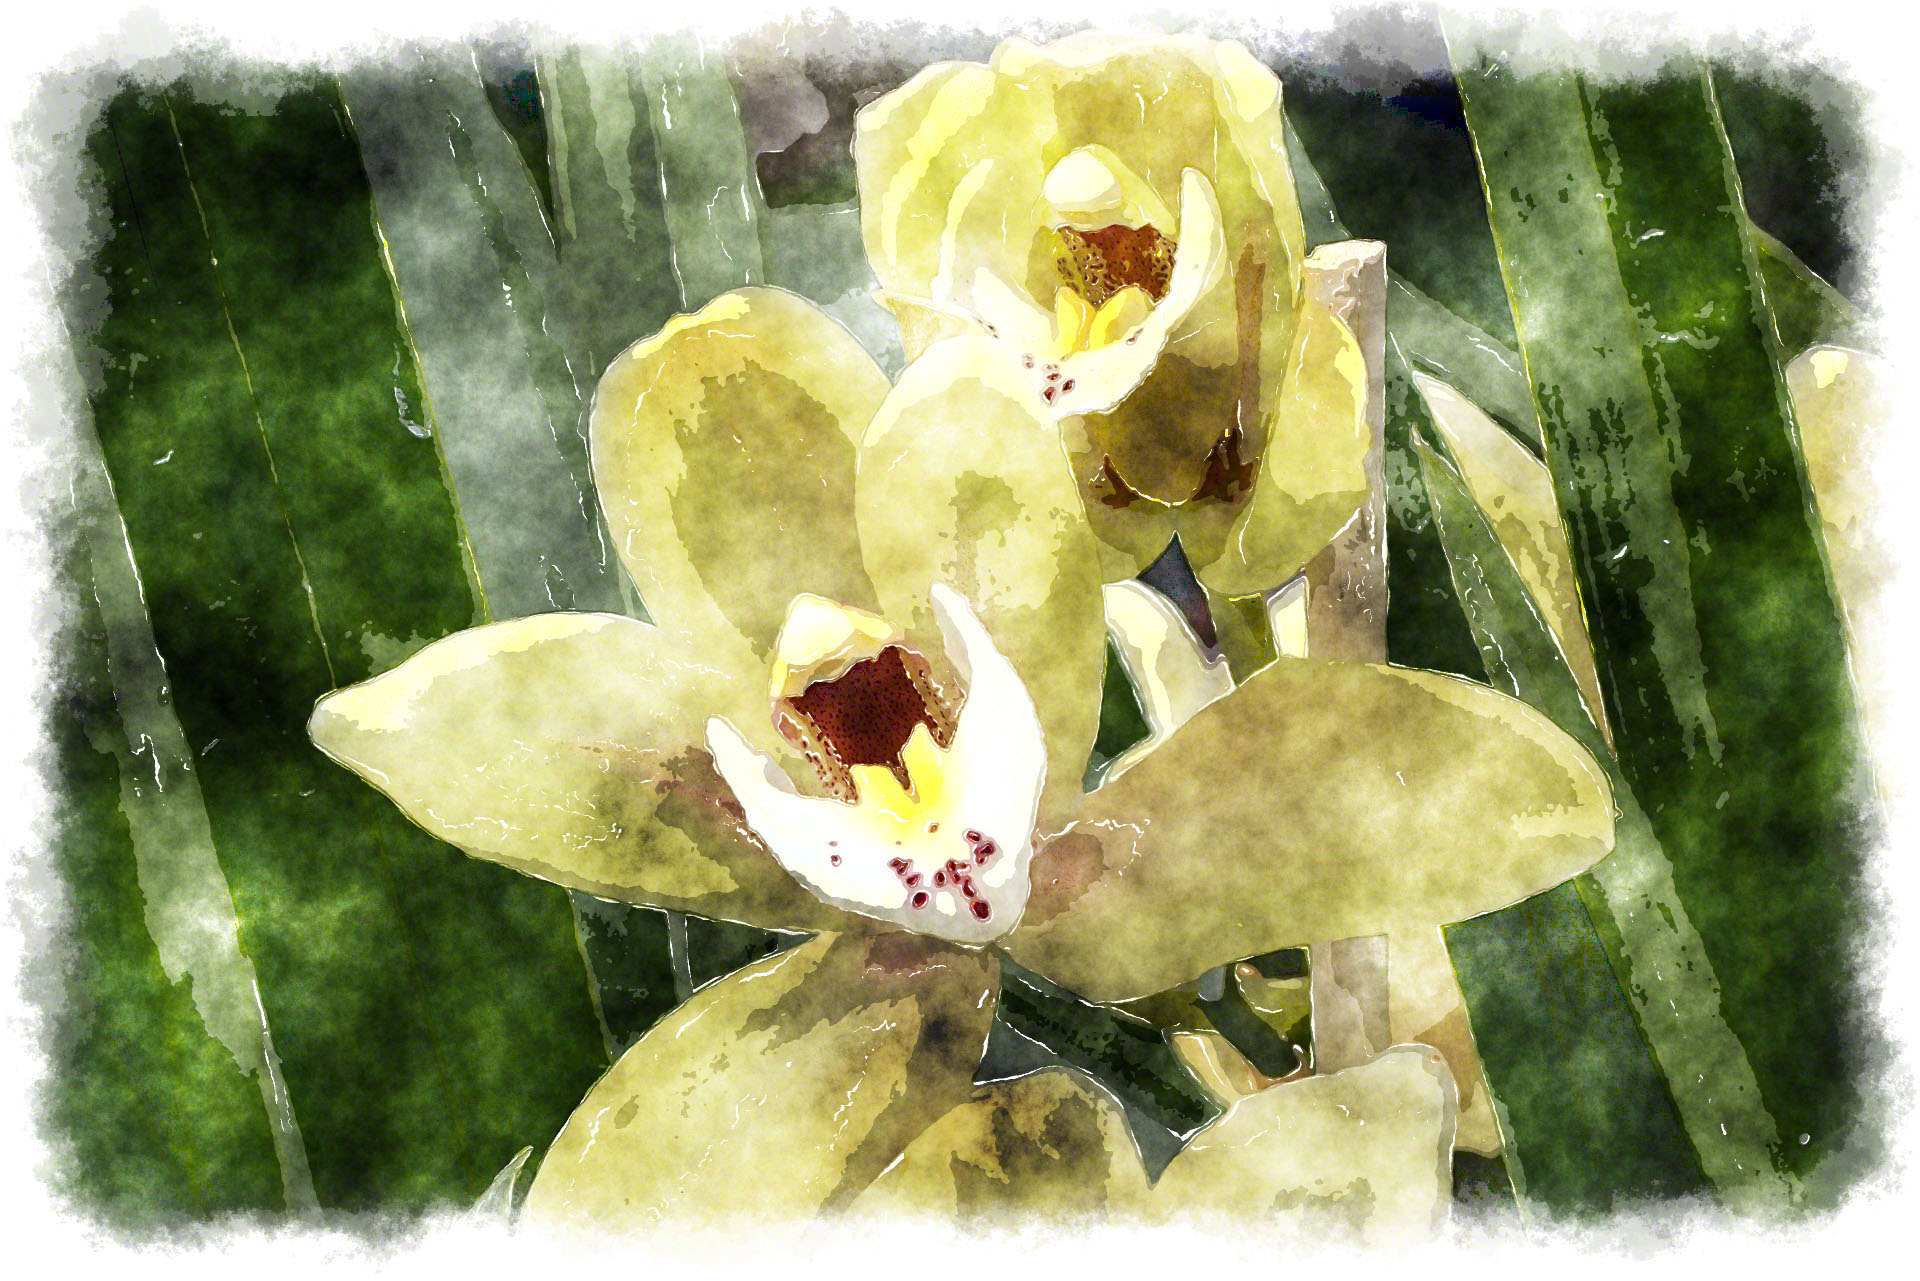 Sprint Garden additionally Watercolor Orchid Painting in addition 176 Monstera Leaf 1245cm 3516820031164 together with ment Entretenir Son Orchidee as well Hervey Bay attractions. on orchid art